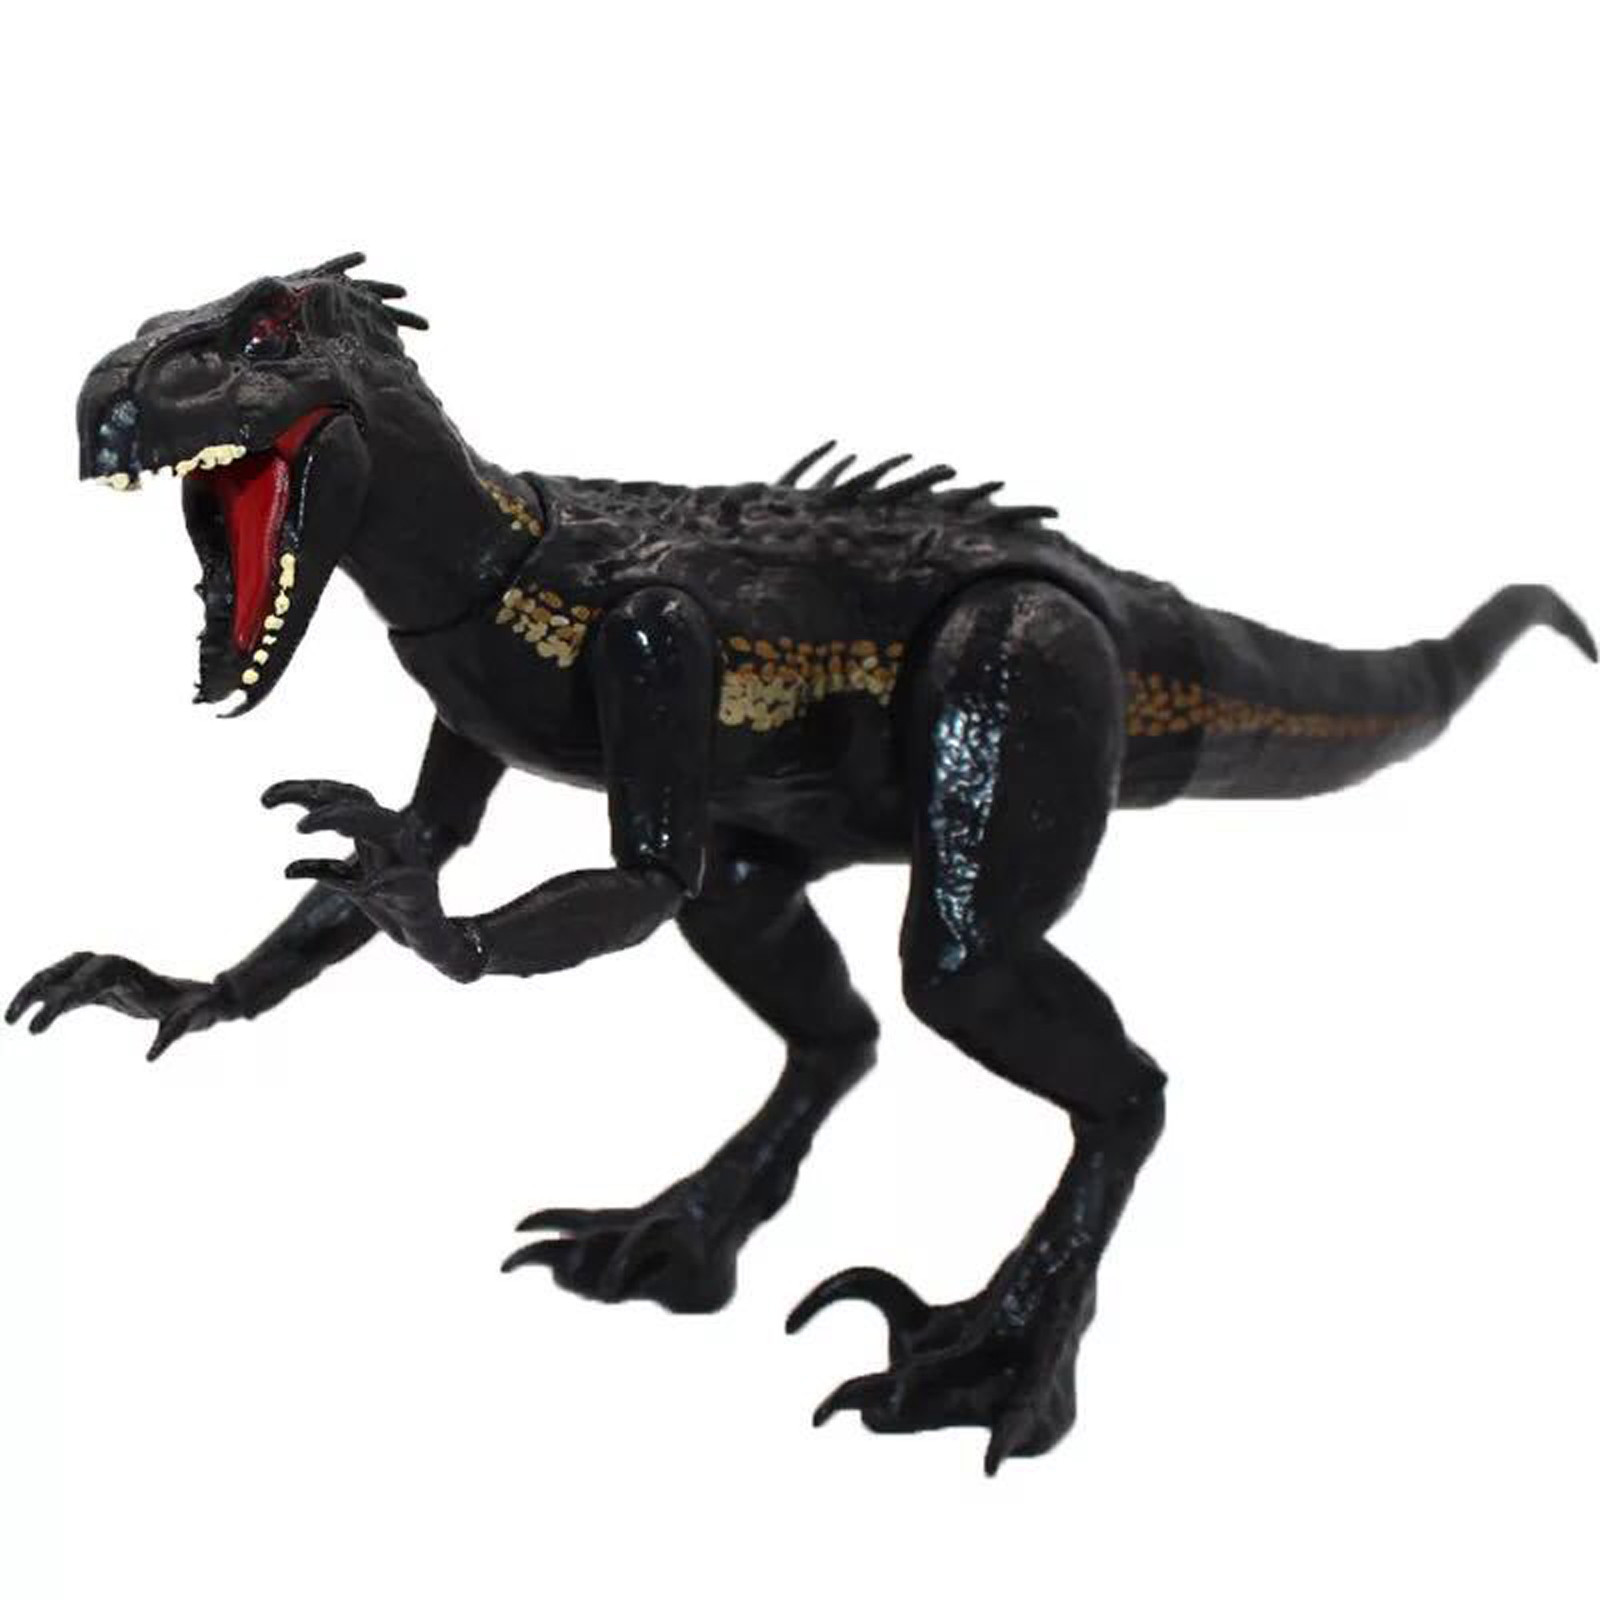 15cm/6inch Dinosaurs Toy Joint Movable Action Figure Walking Dinosaur Toy For Children's Room Dinosaur Toys Decoration Gifts